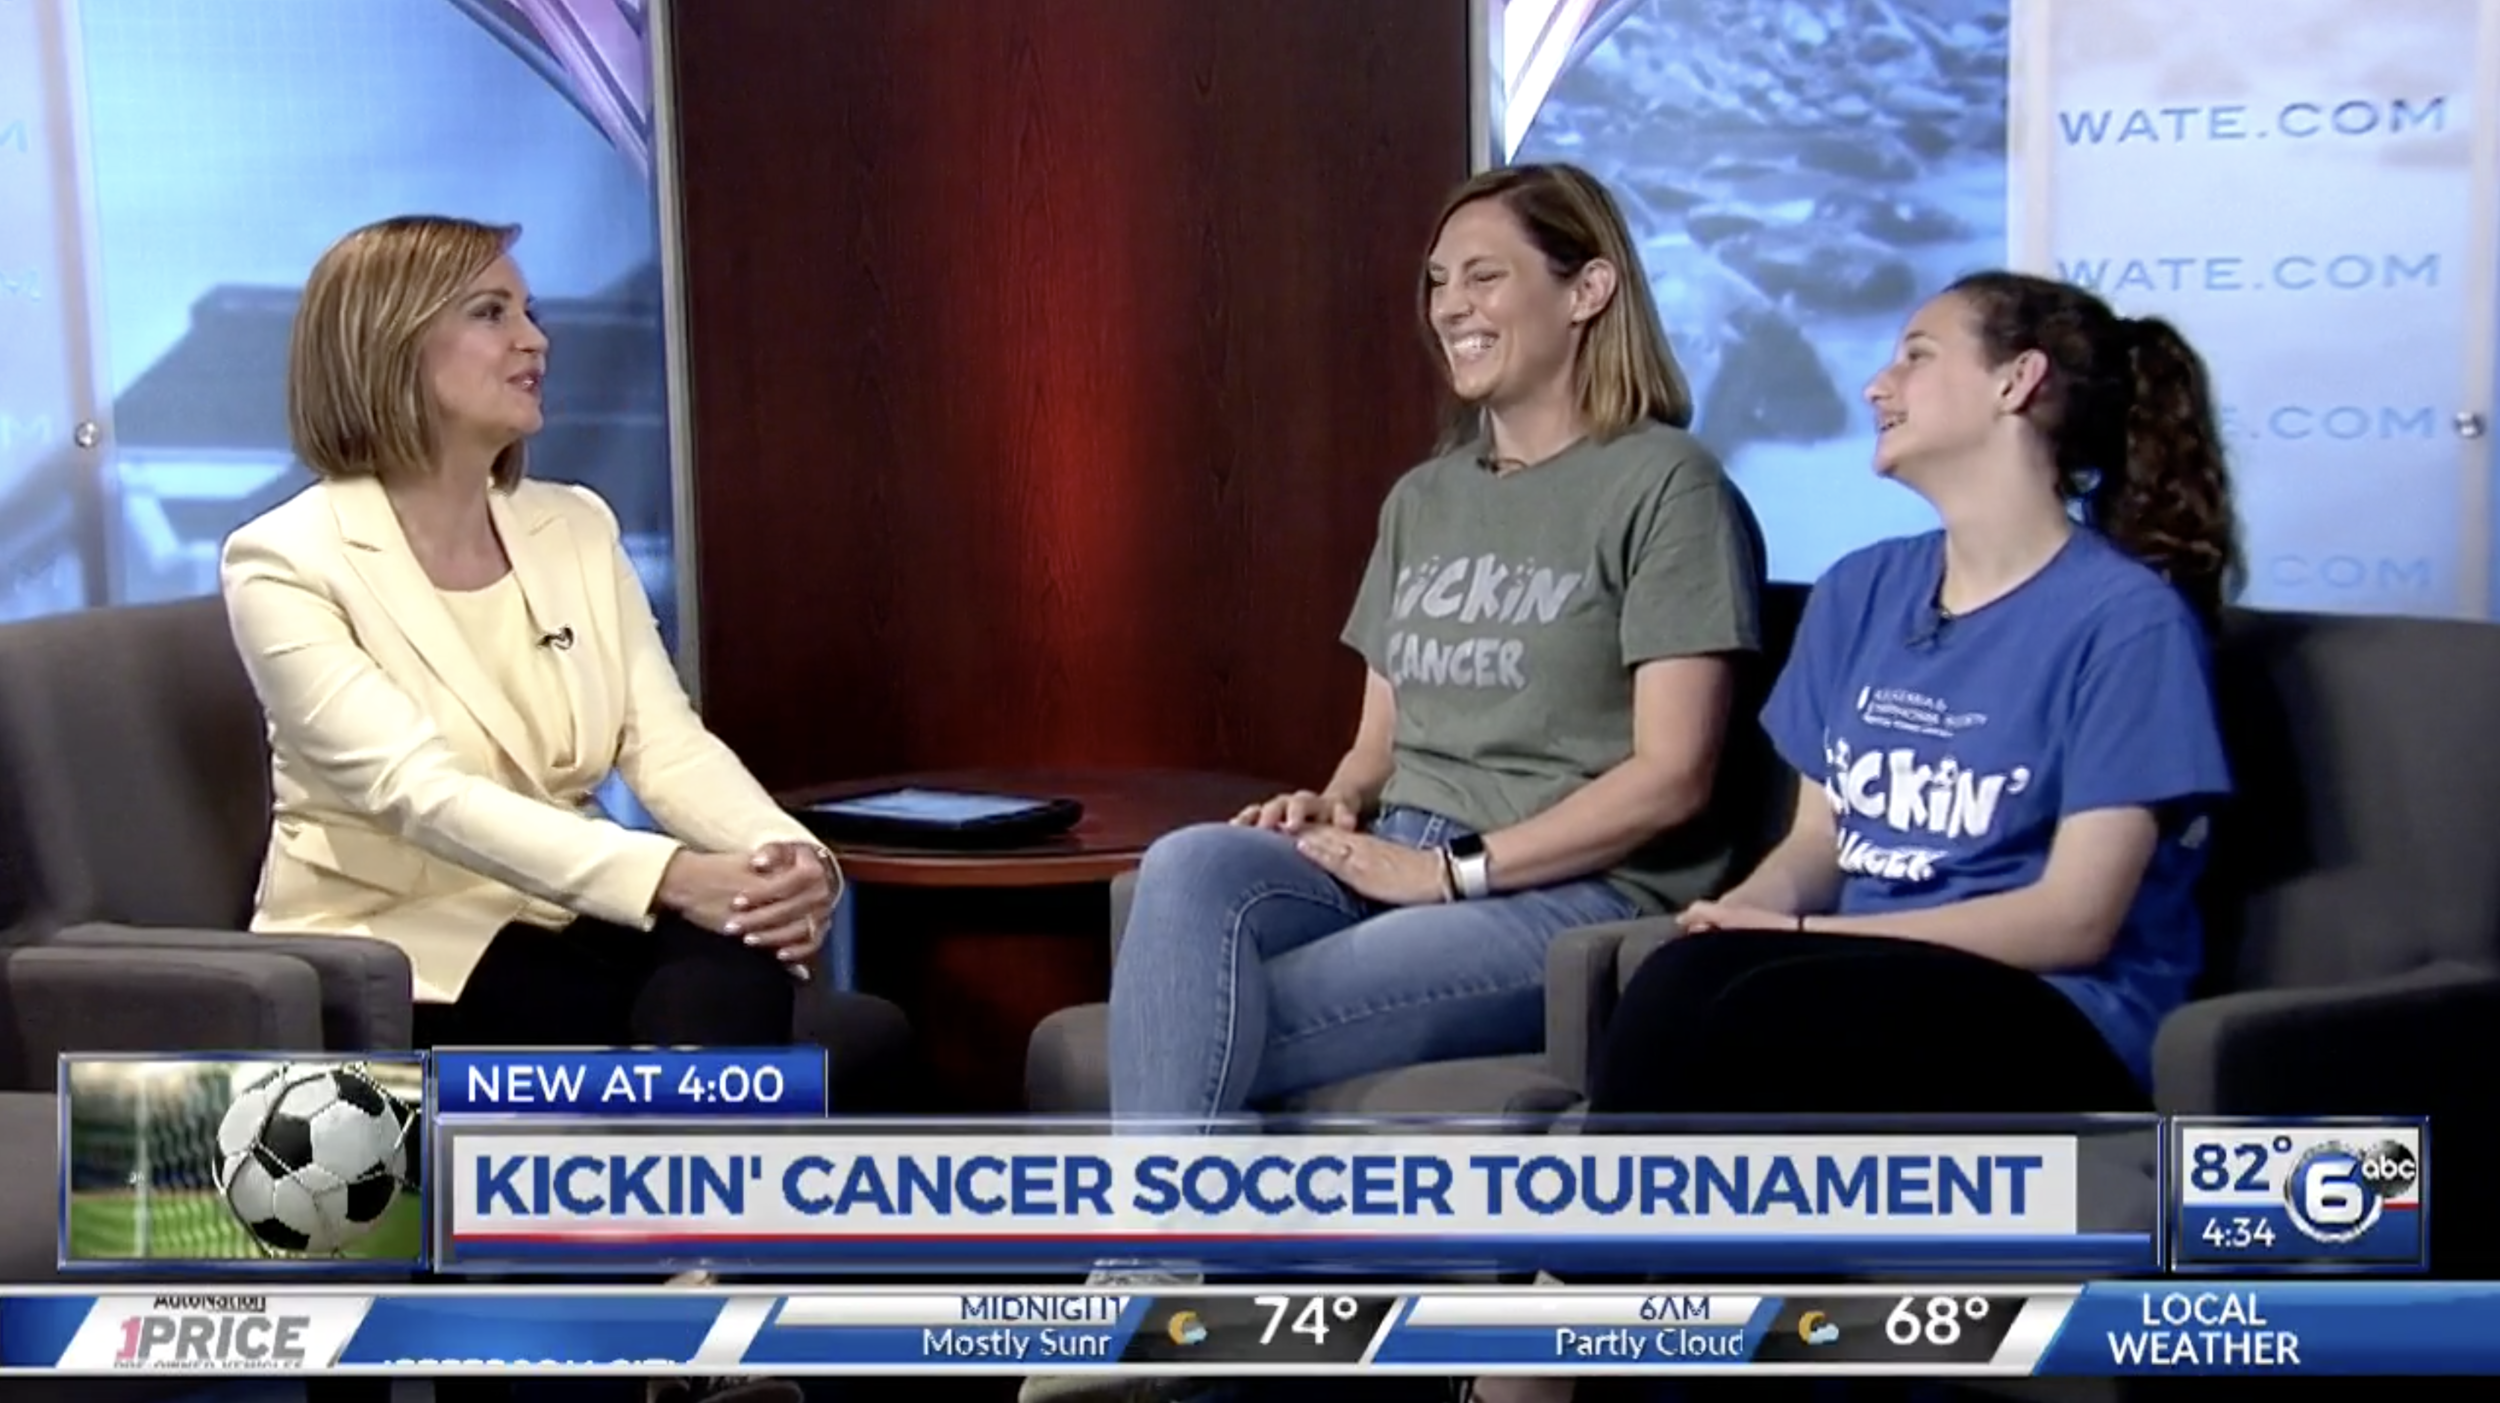 Feature Interview on WATE - 2018 Tournament Feature Spot